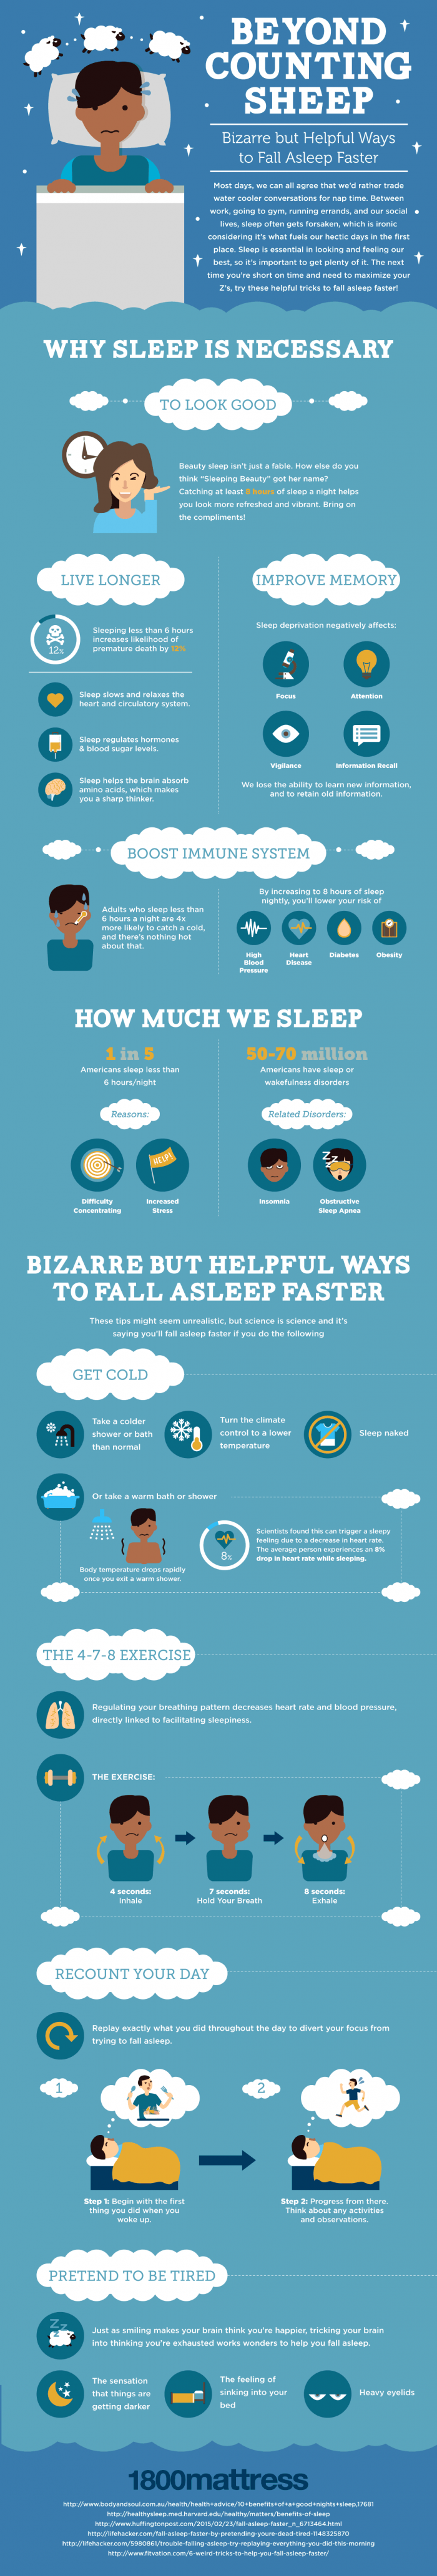 4 Different Ways to Make Yourself Fall Asleep Faster